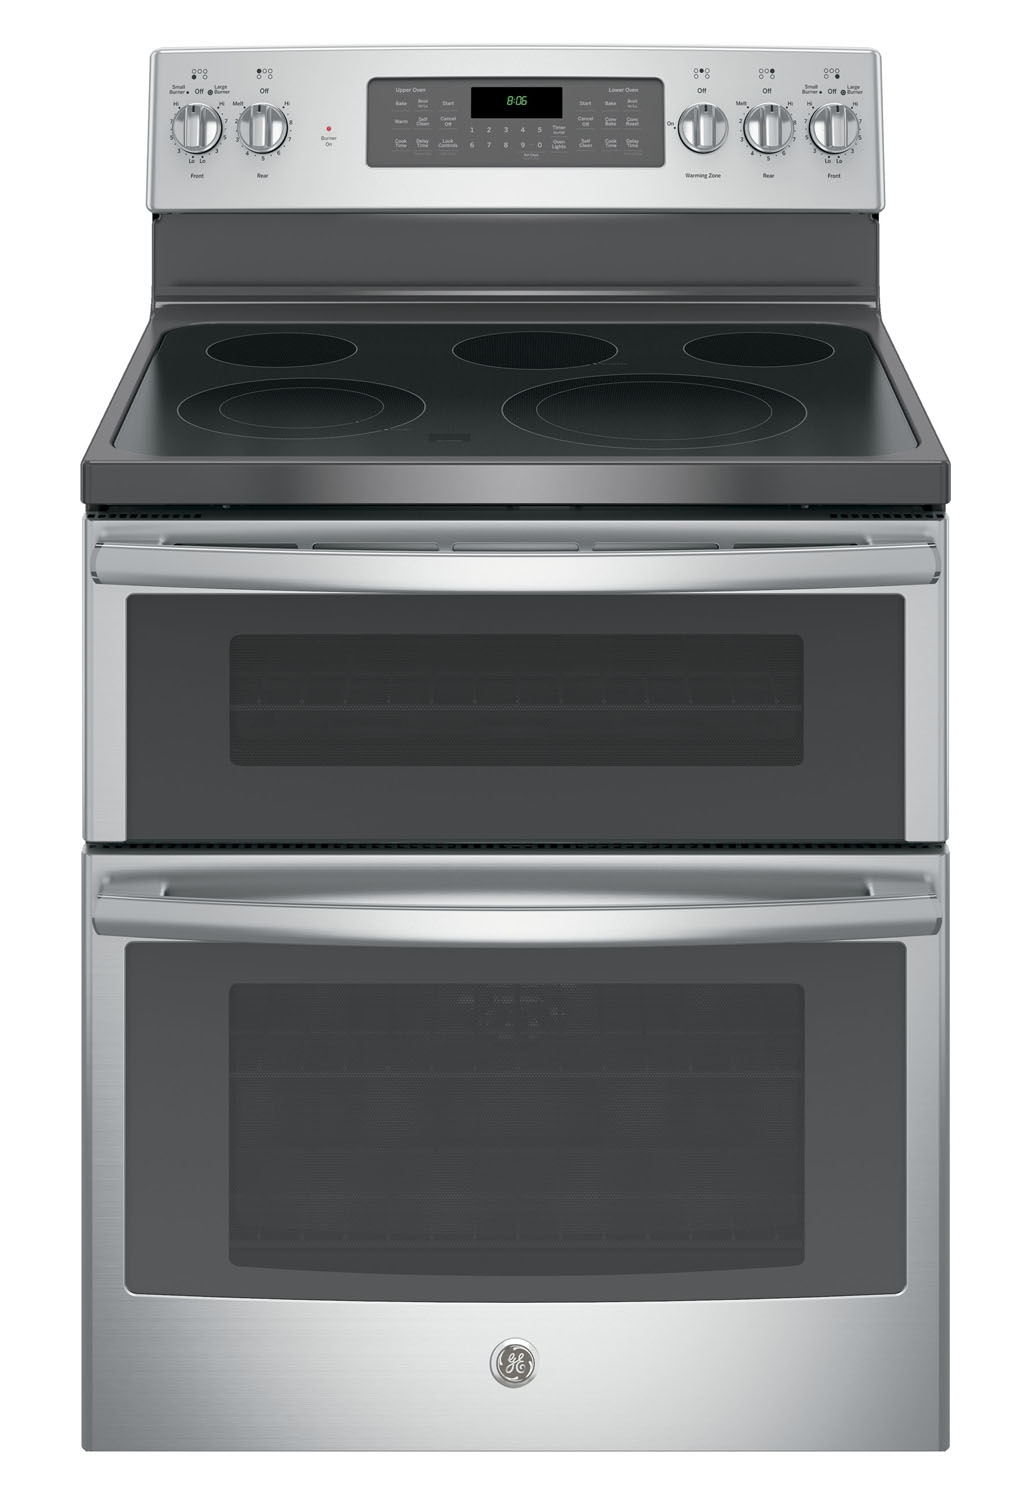 Ge 30 Stainless Steel Free Standing Electric Double Oven Convection Range Jb860sjss